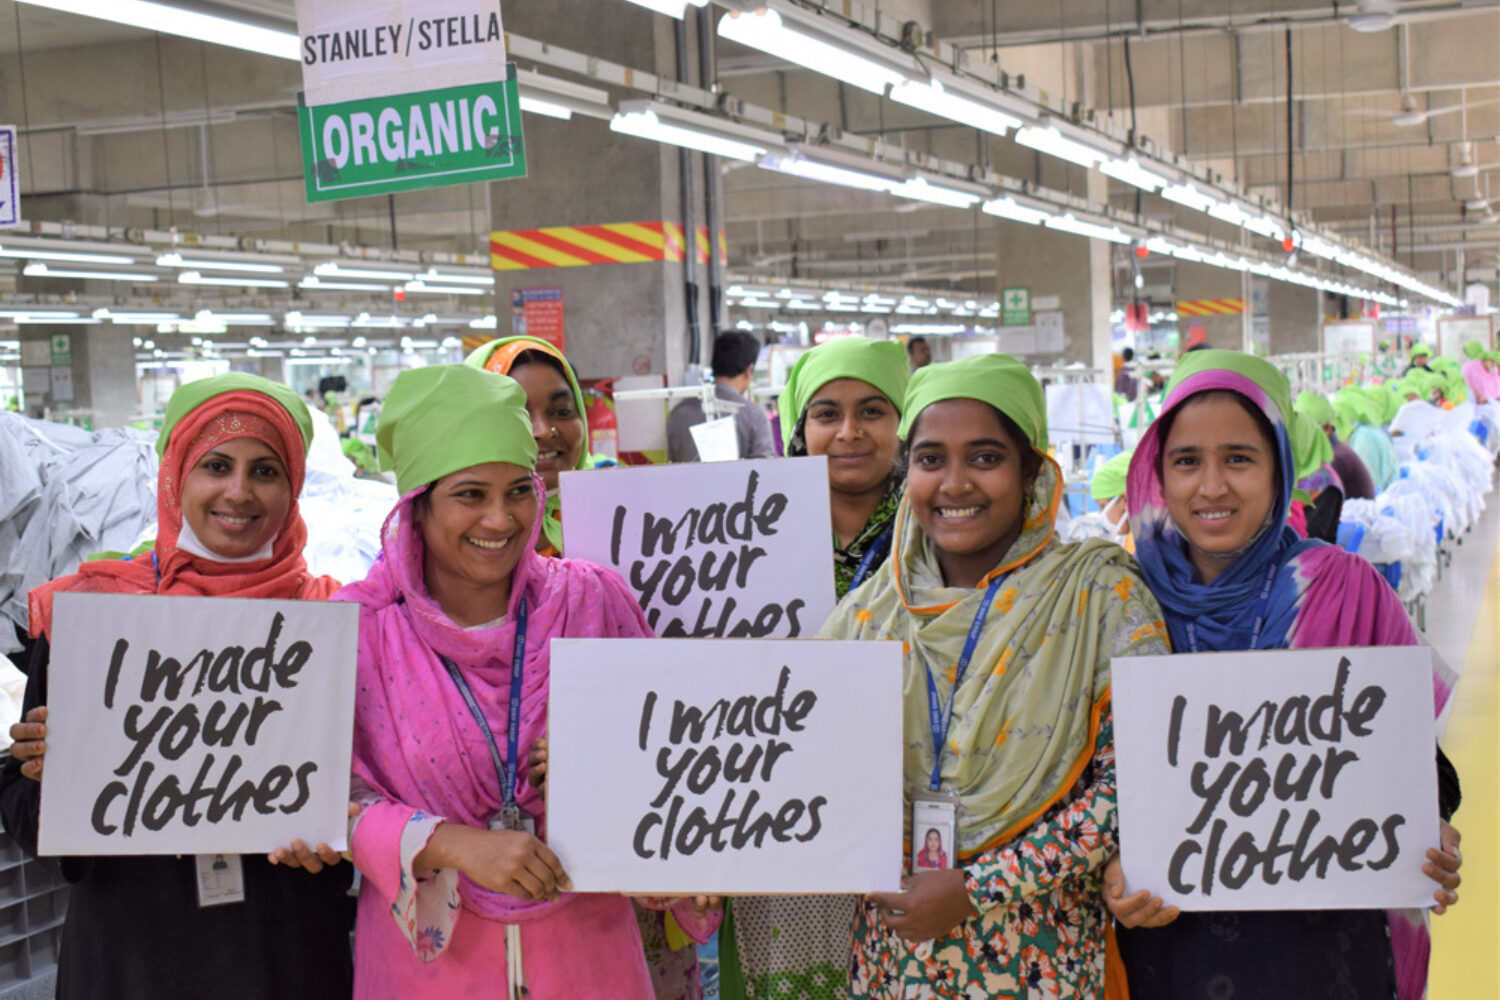 Stanley Stella Bangladesh Factory I made your clothes sign